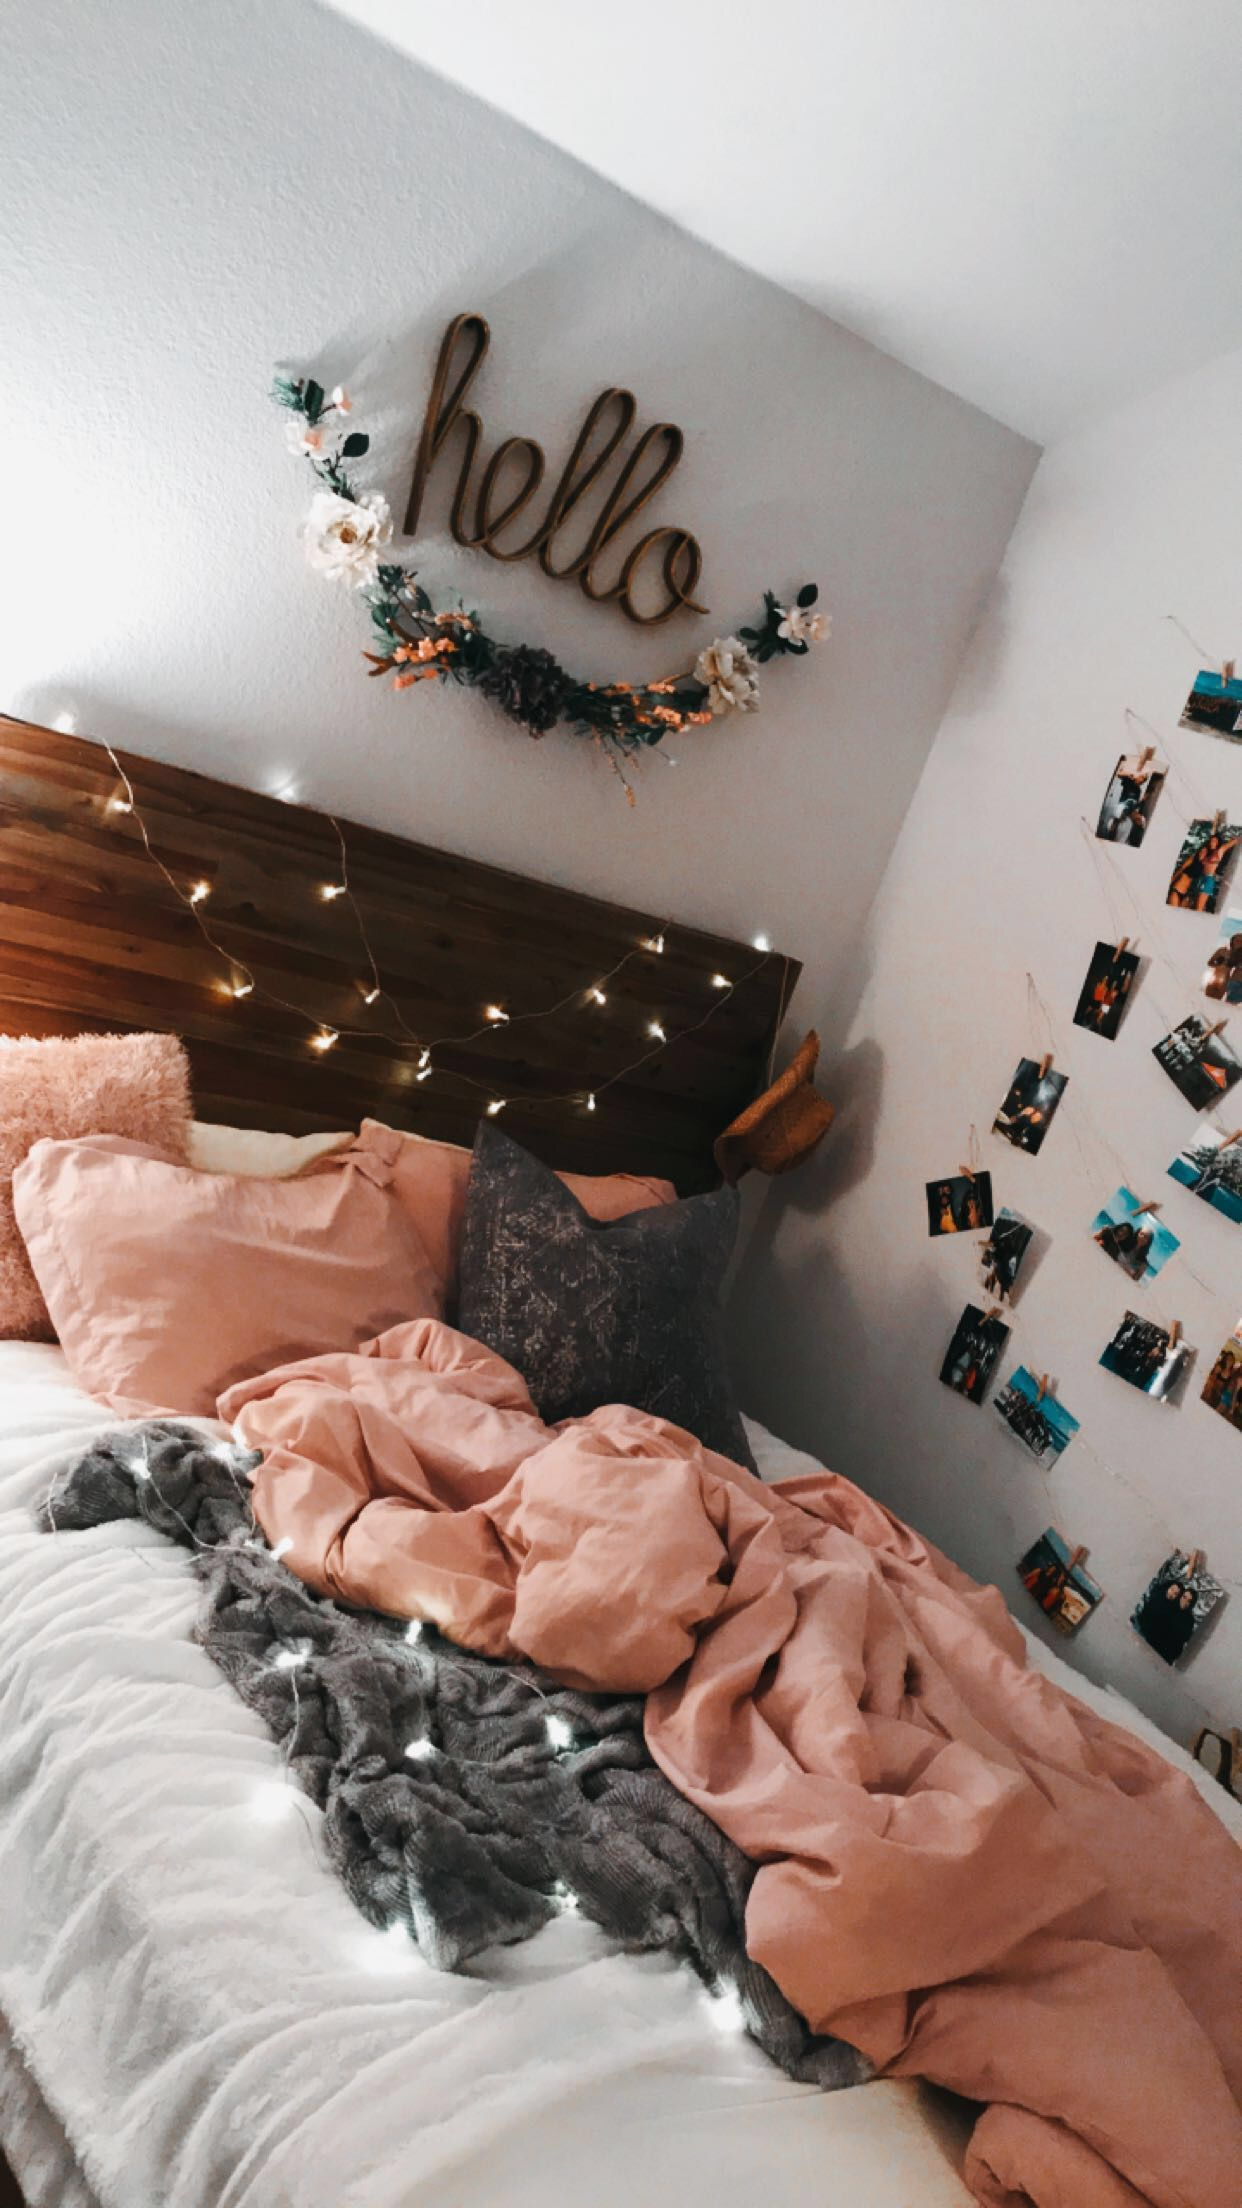 cute teen room decor - Diy Decorating #Decorating #room #DiyDecorating #teenroomdecor